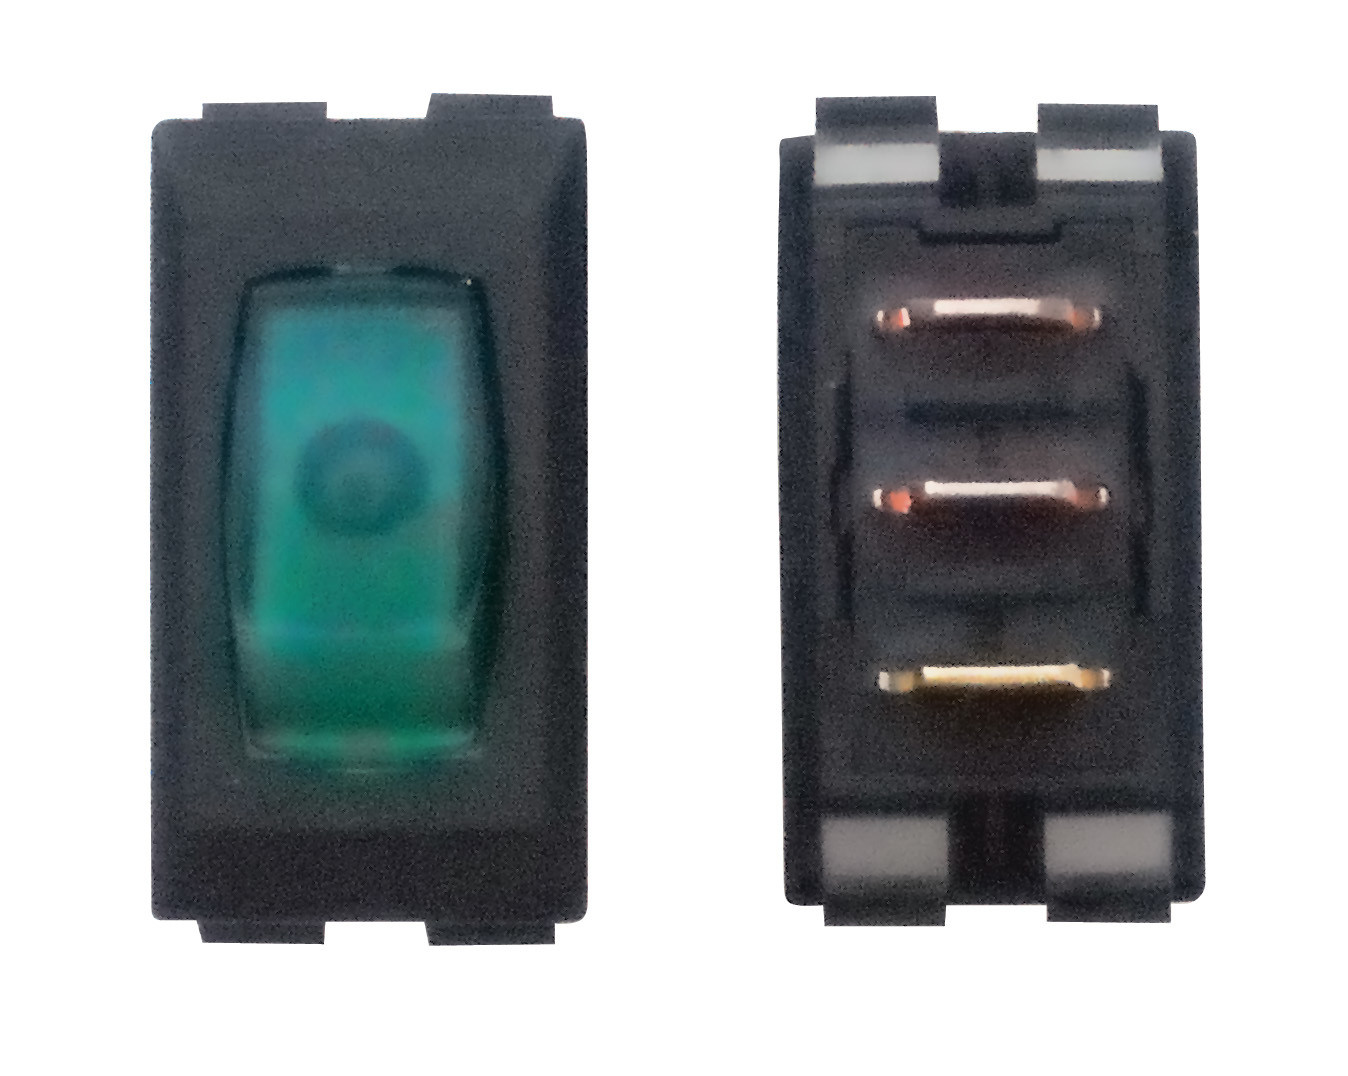 Illuminated On/Off Switch - Green/Black 1/card